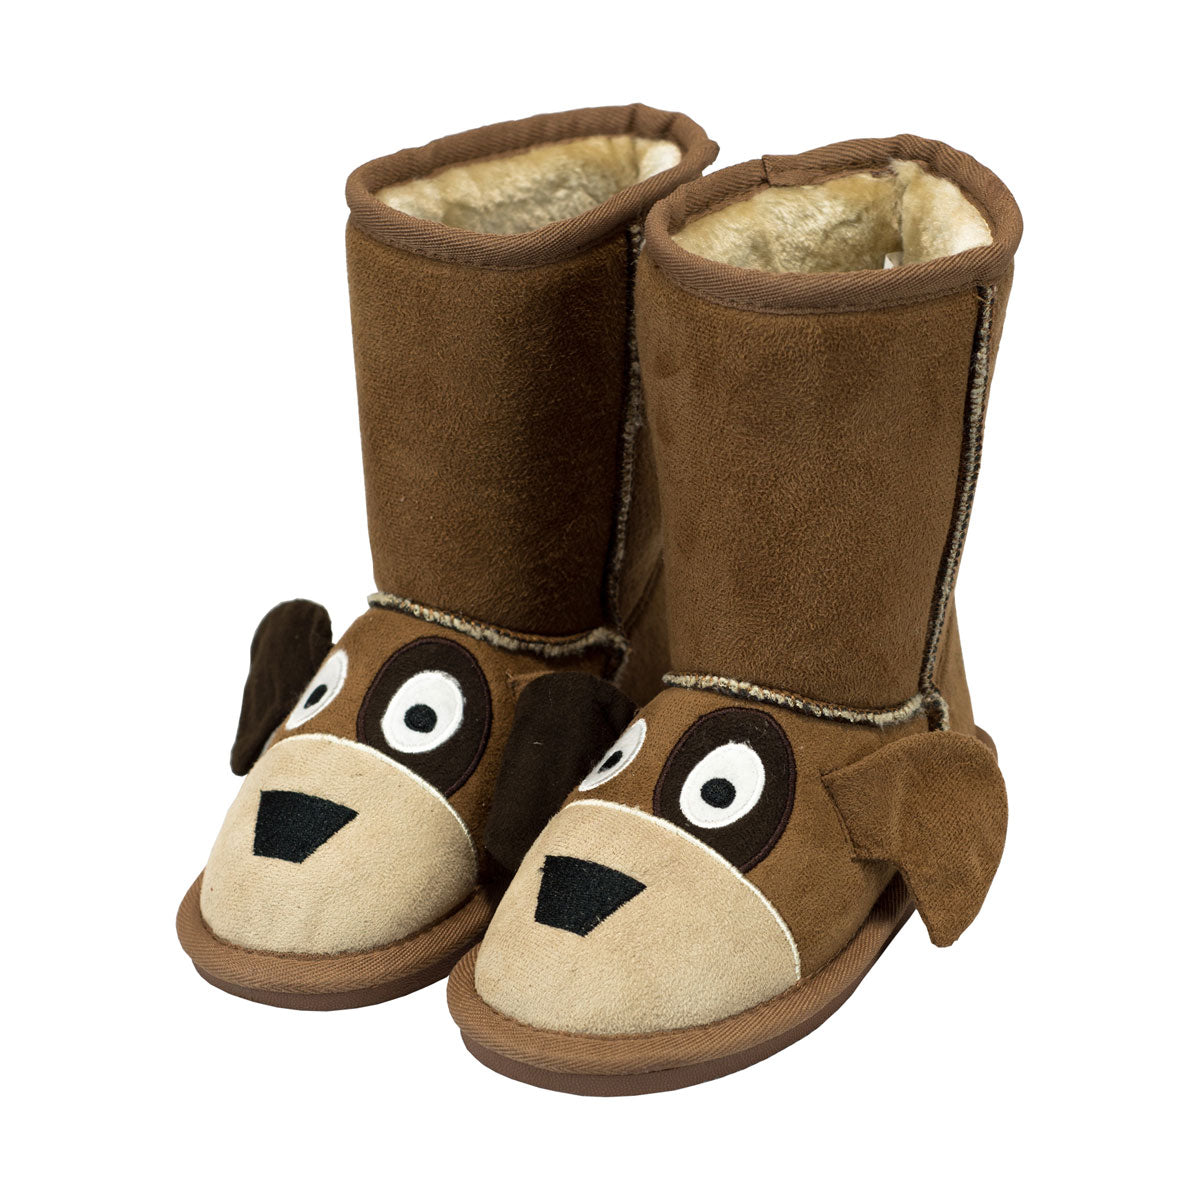 LazyOne Unisex Dog Toasty Toez Slippers Kids